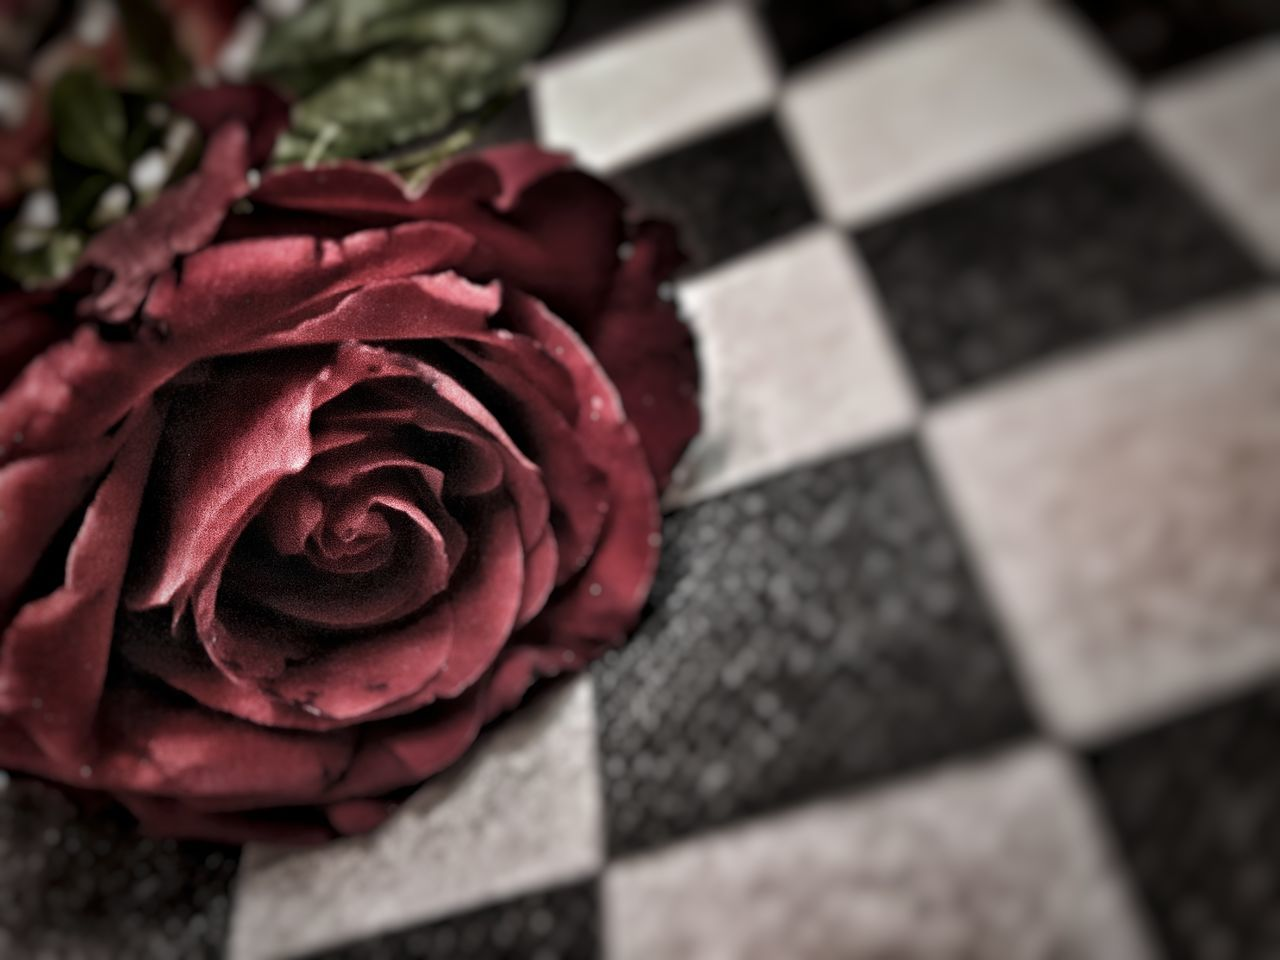 Red Rose Valentine's Day  Amour Eternel Restaurant Tranquility Loveit Amoregrande Tiamoimmensamente Nature_perfection Redonblackandwhite No People Day PhonePhotography Mylove Indoors  Cincin EyeEmNewHere EyeEmNewHere EyeEmNewHere EyeEmNewHere EyeEmNewHere EyeEmNewHere EyeEmNewHere EyeEmNewHere EyeEmNewHere EyeEmNewHere EyeEmNewHere